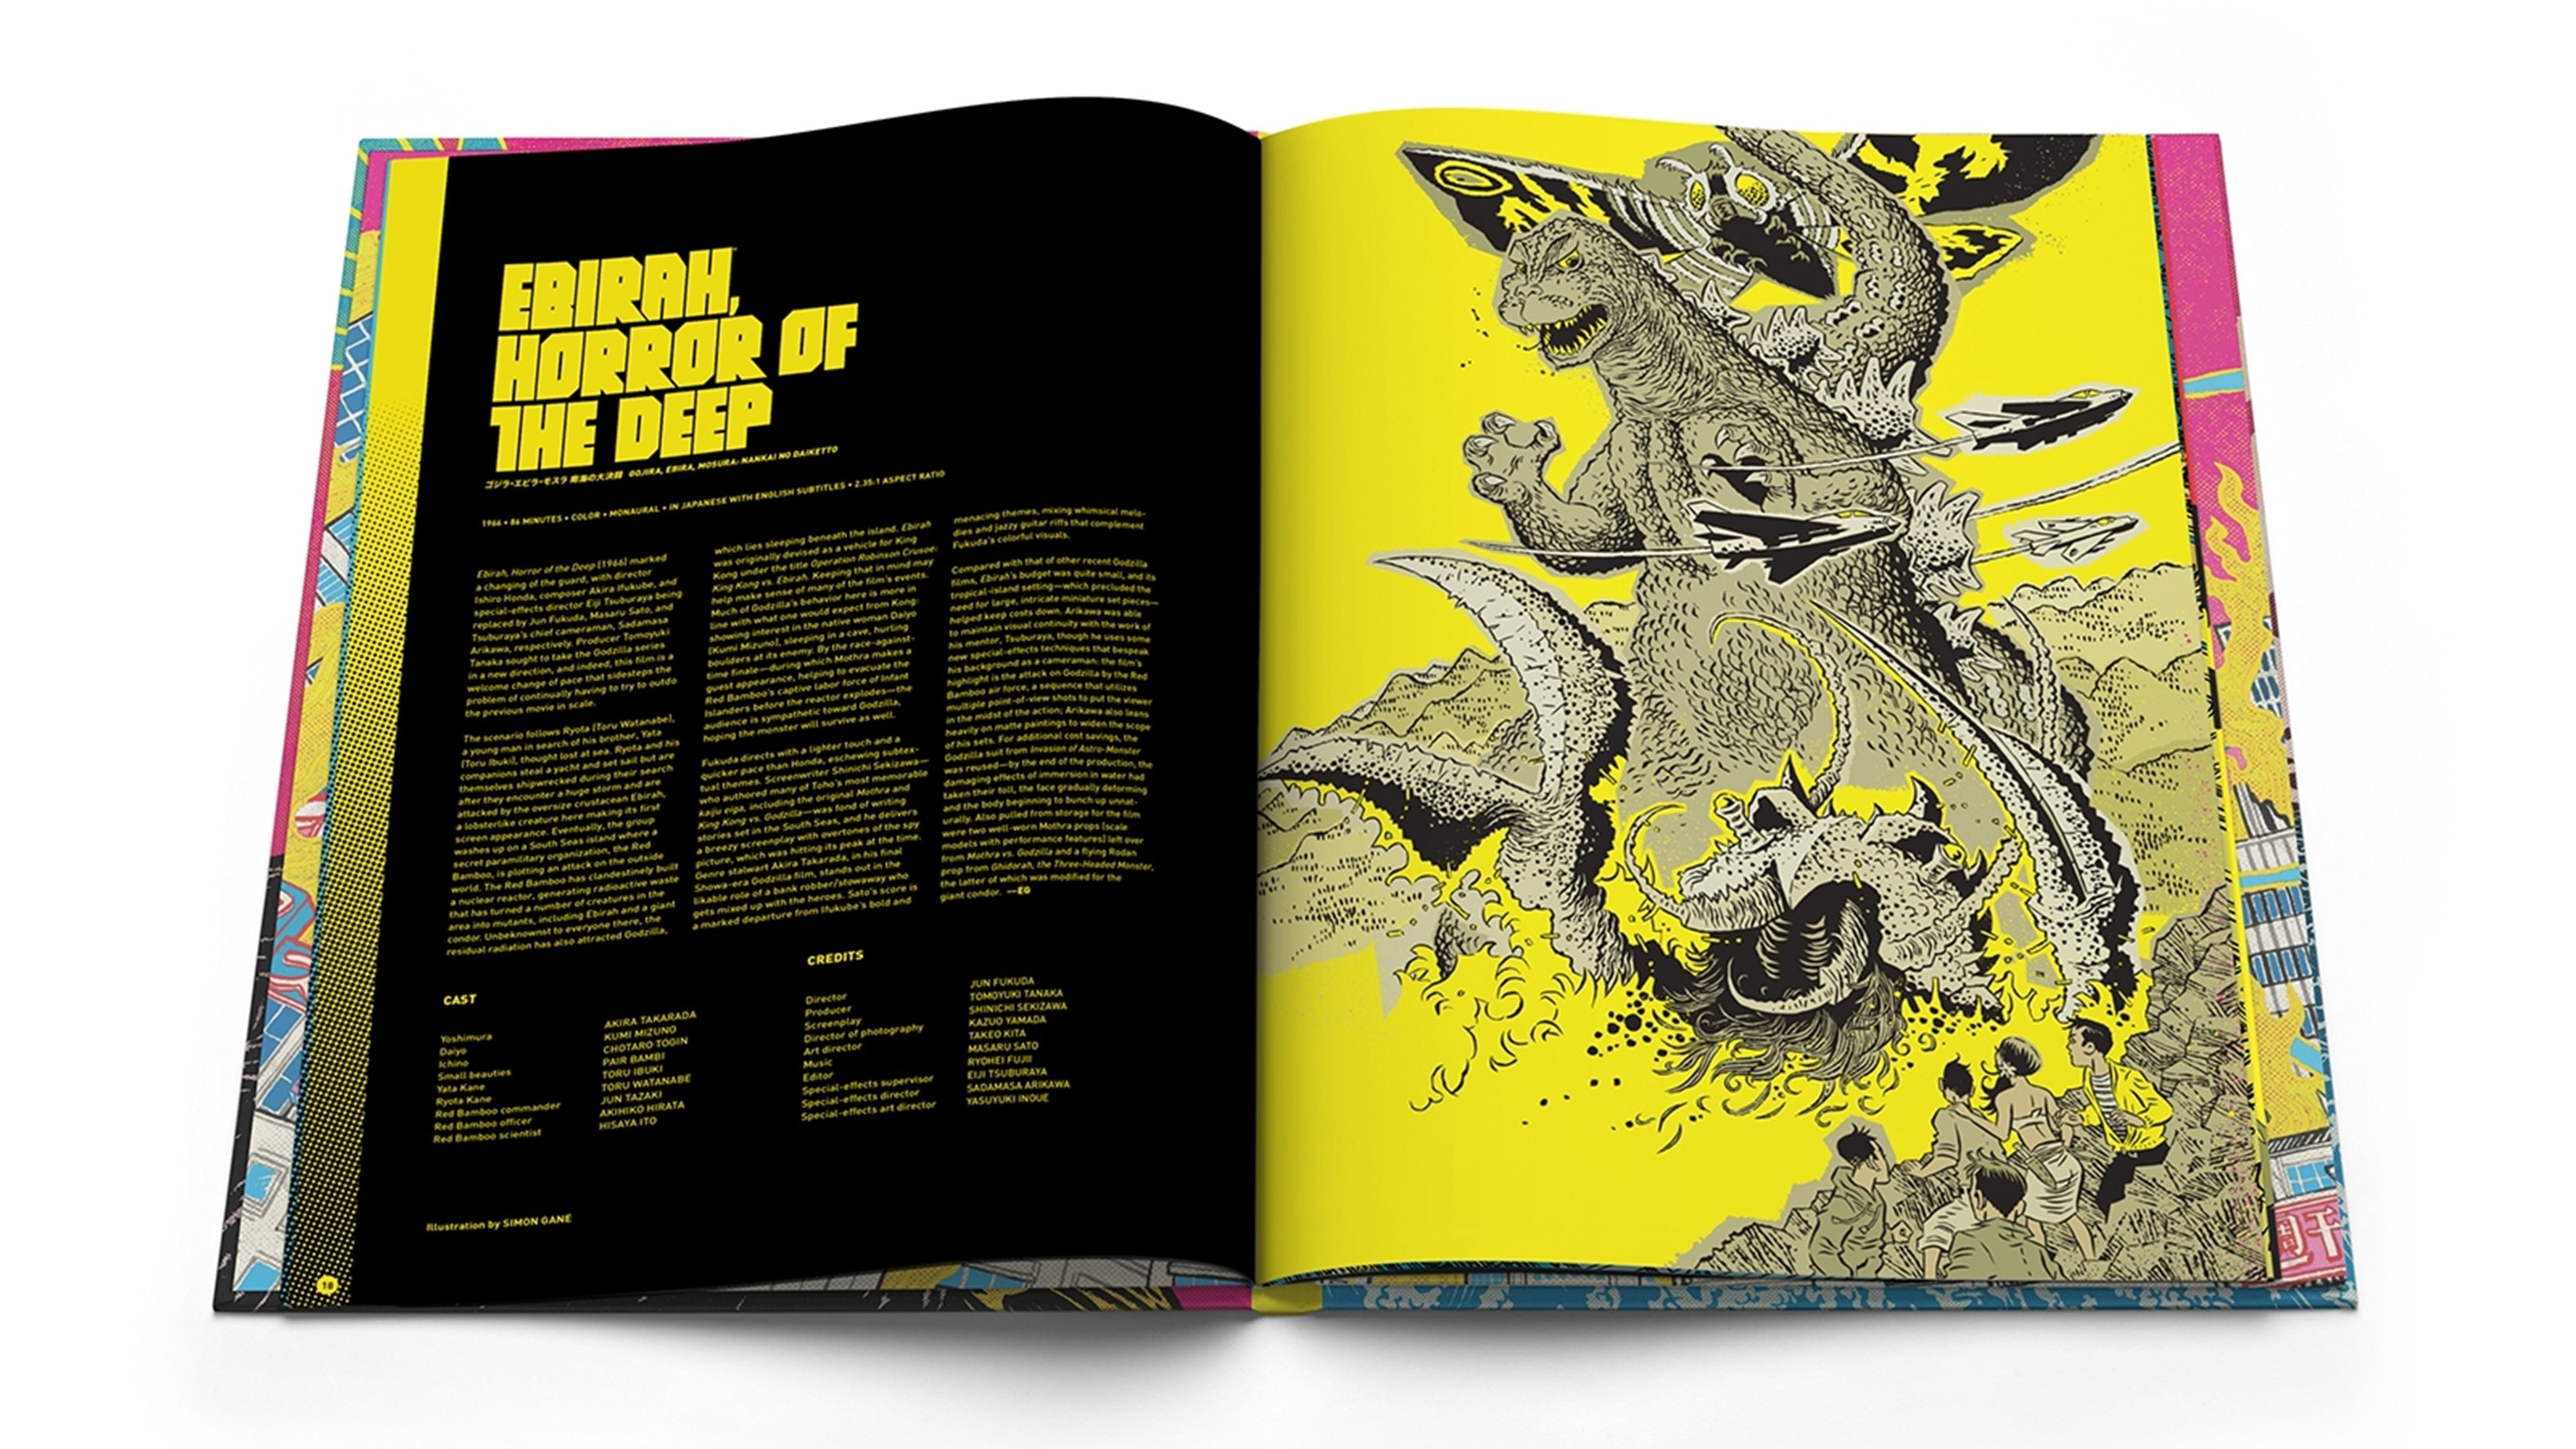 Godzilla: The Showa Era Films 1954 - 1975 Limited Edition - The Criterion Collection - 3